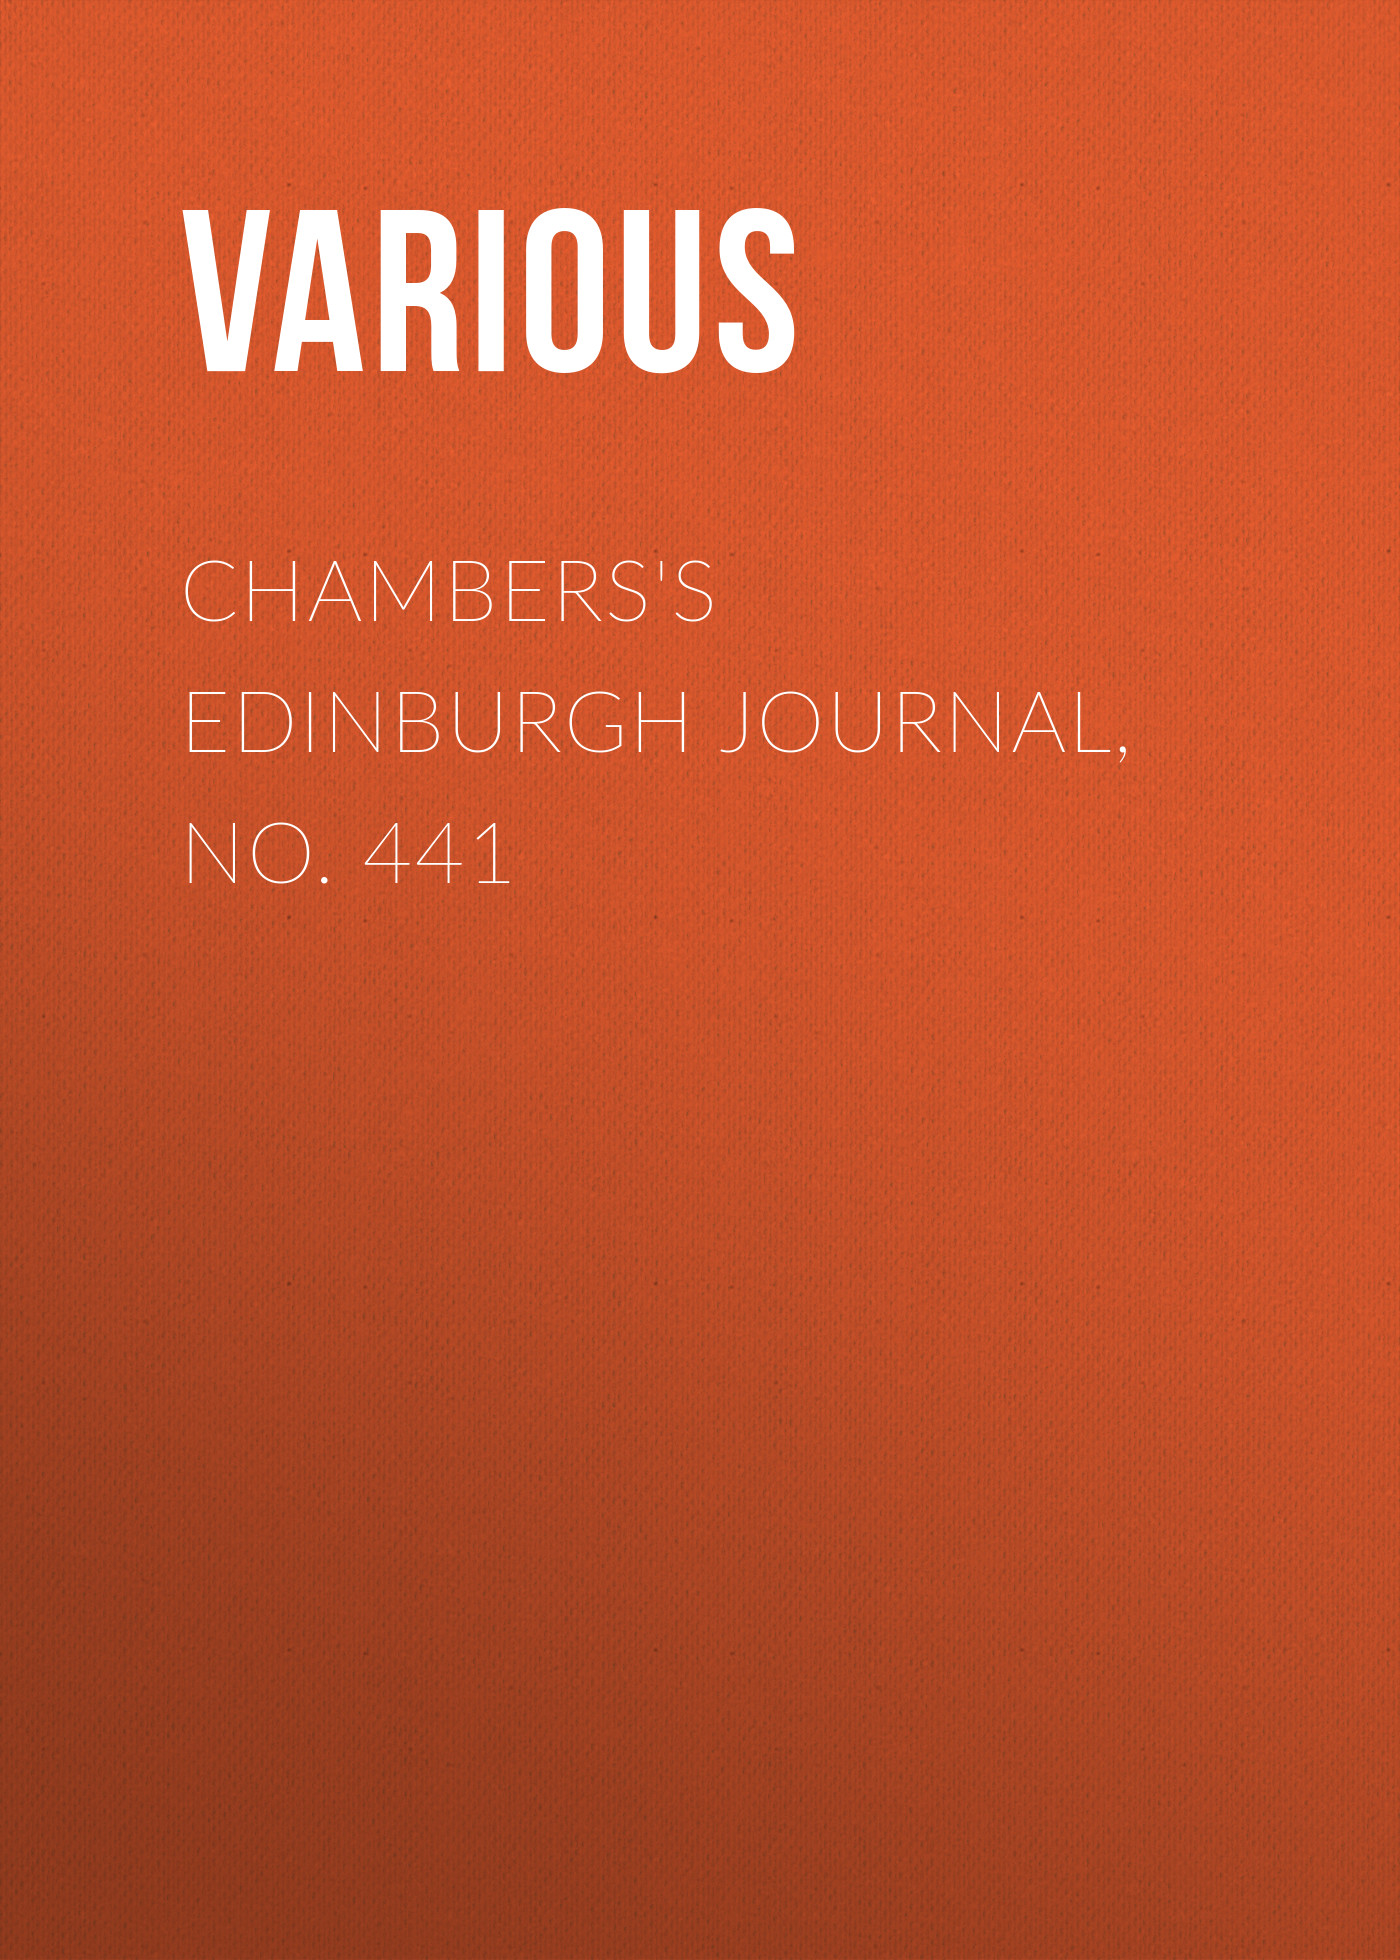 Various Chambers's Edinburgh Journal, No. 441 dara o briain edinburgh